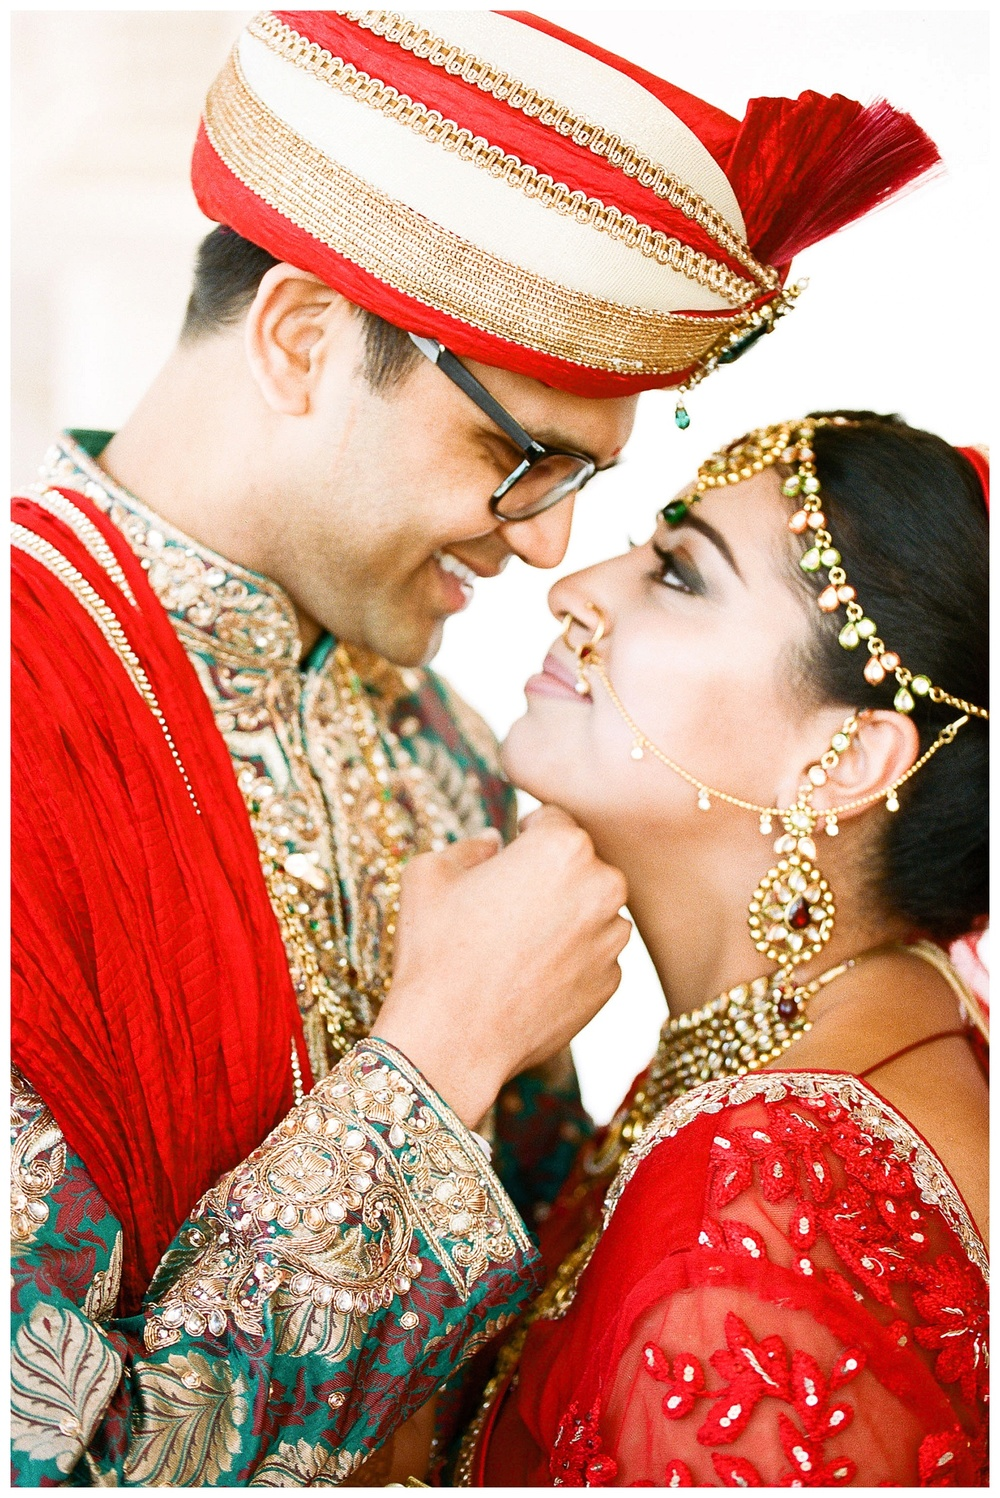 Atlanta BAPS Wedding Photographer-BAPS Indian wedding photos (7 of 47).jpg